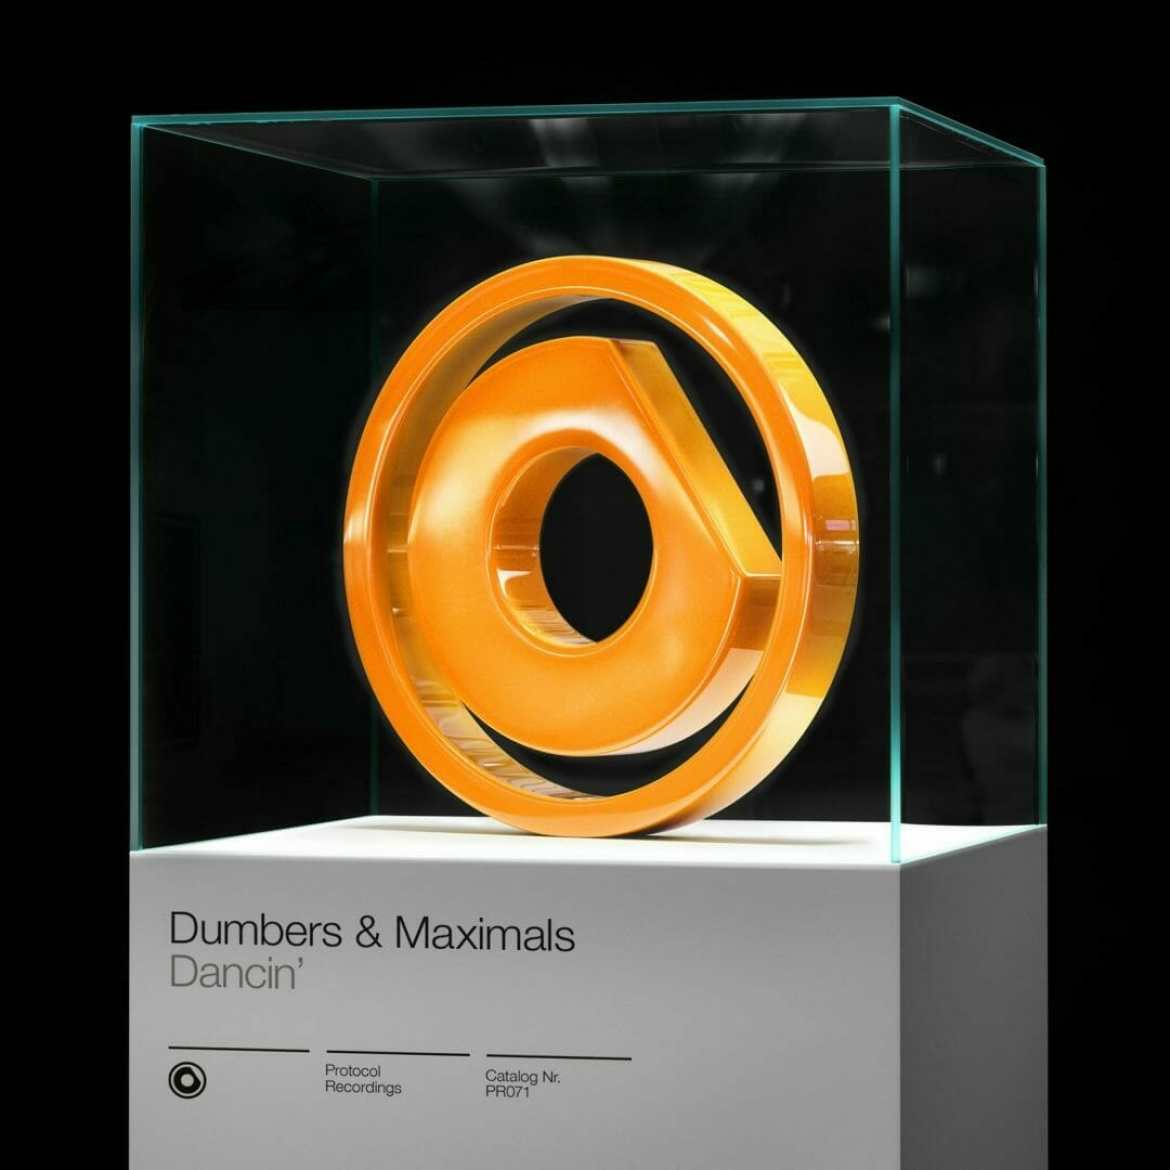 dumbers and maximals dancin cover